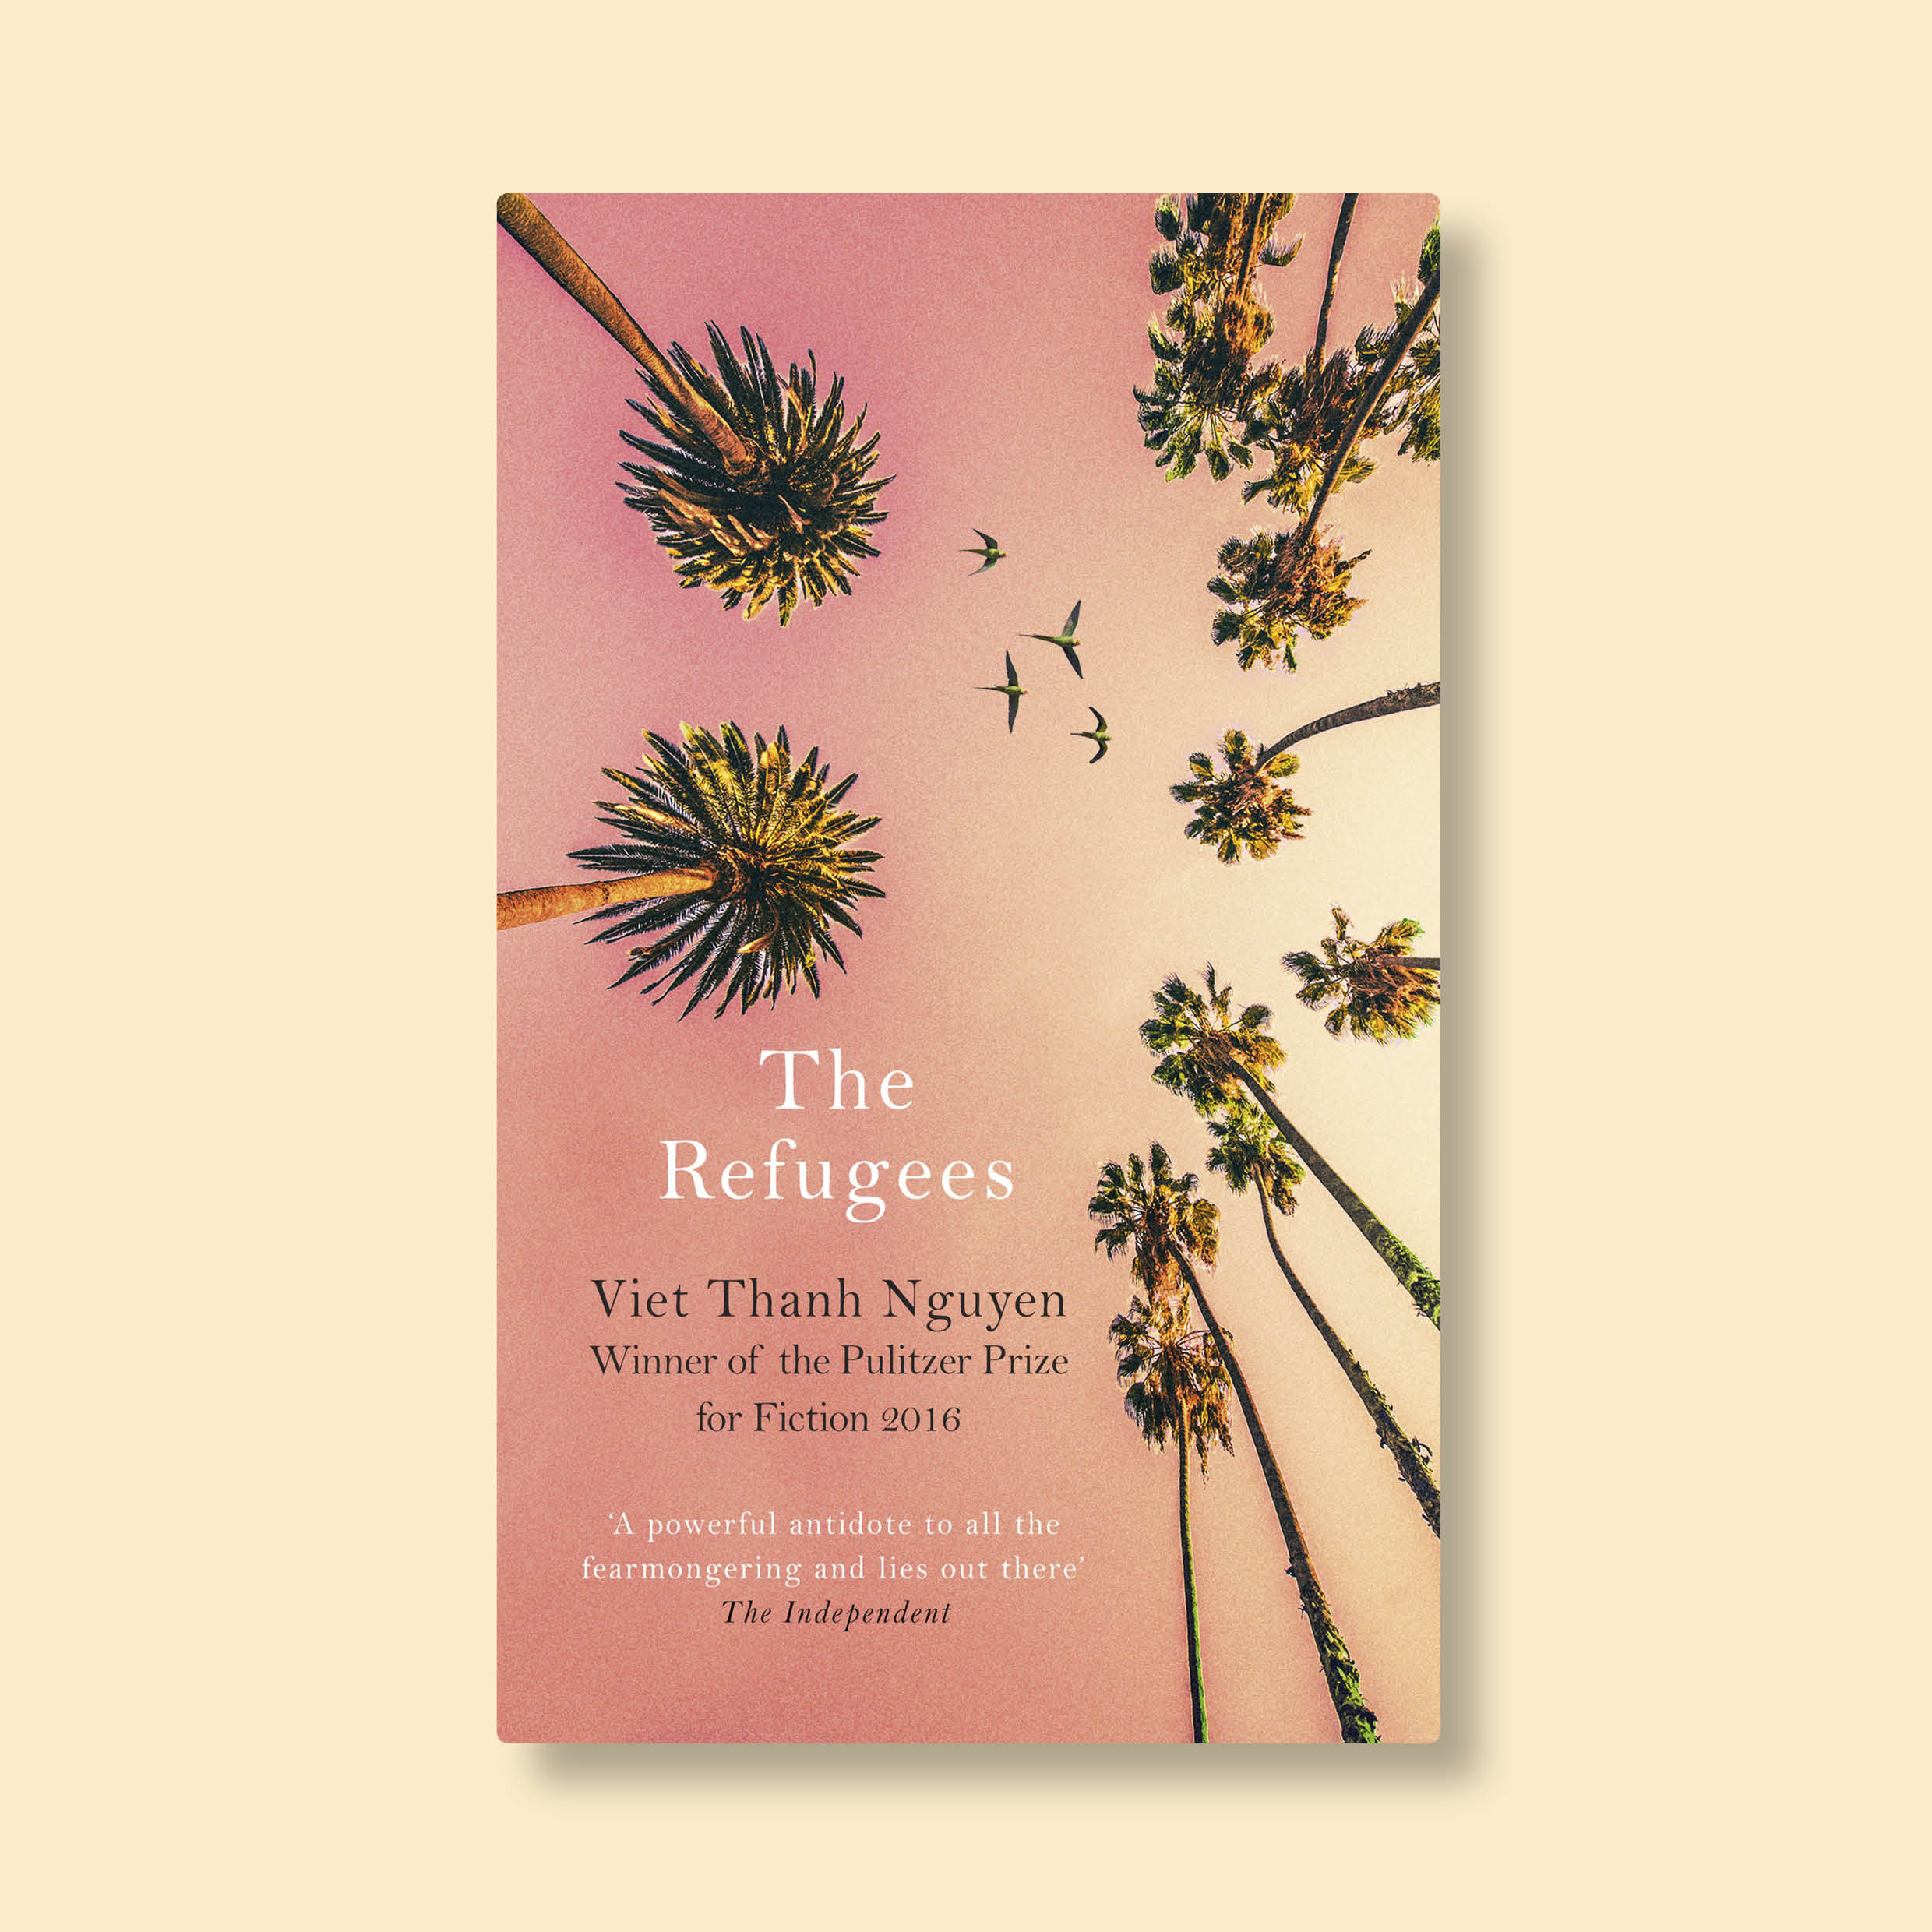 The Refugees paperback